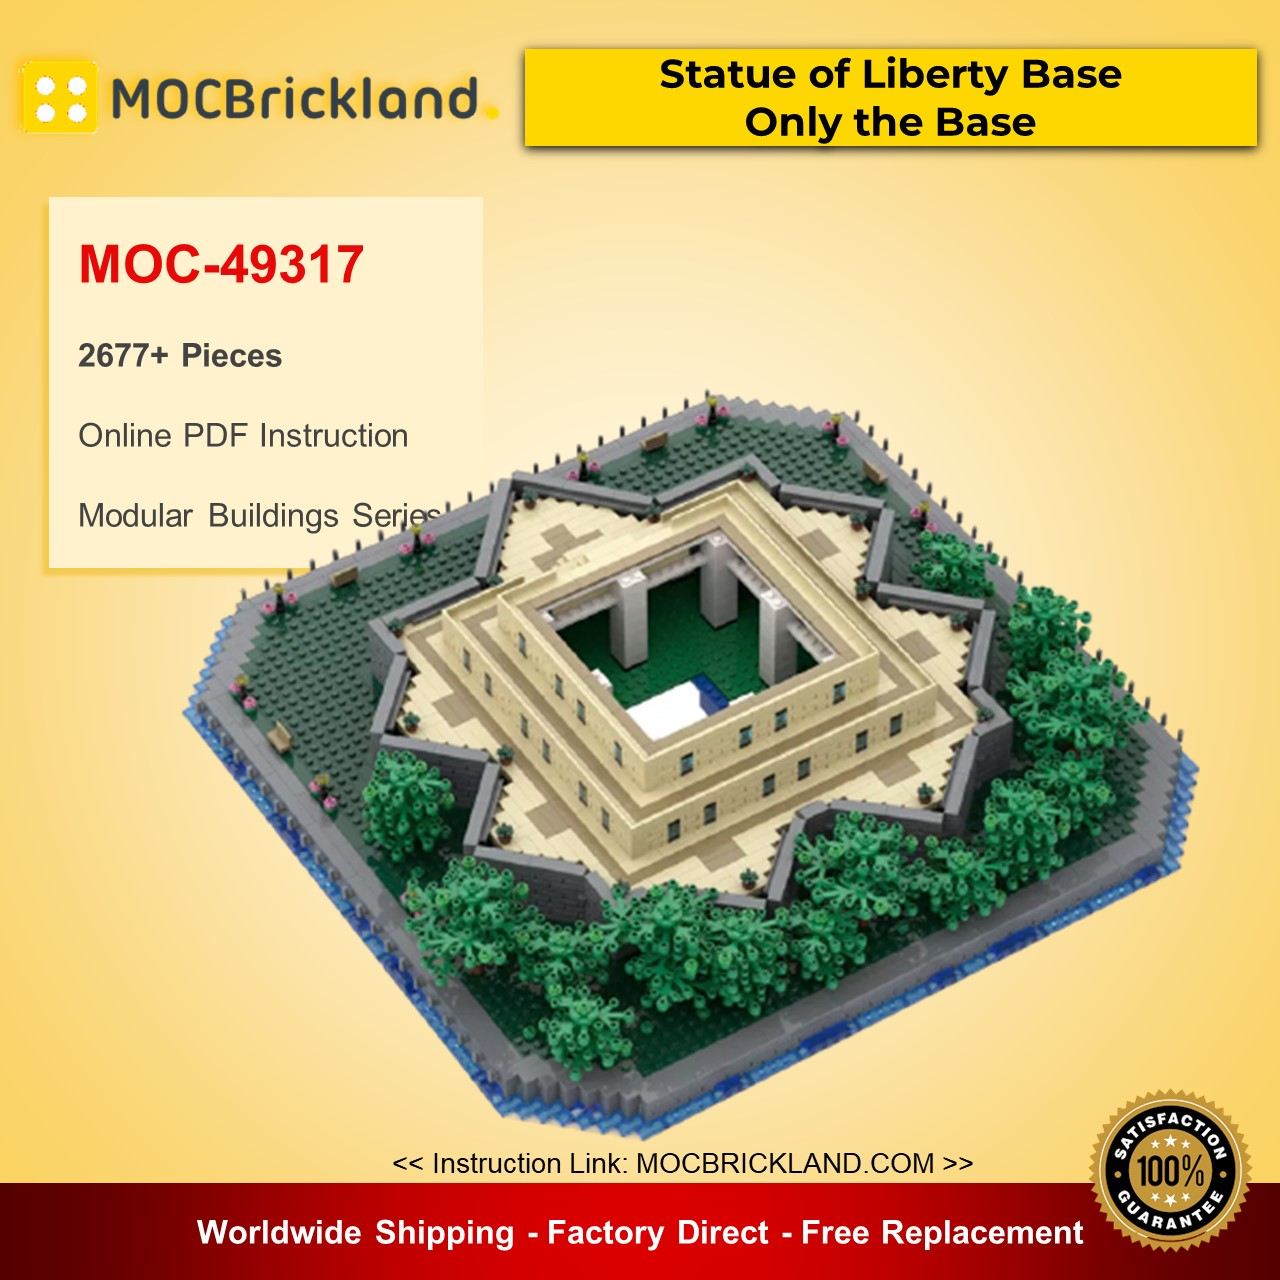 MOC-49317 Modular Buildings Statue of Liberty Base – Only the Base Designed By adambetts With 2677 Pieces